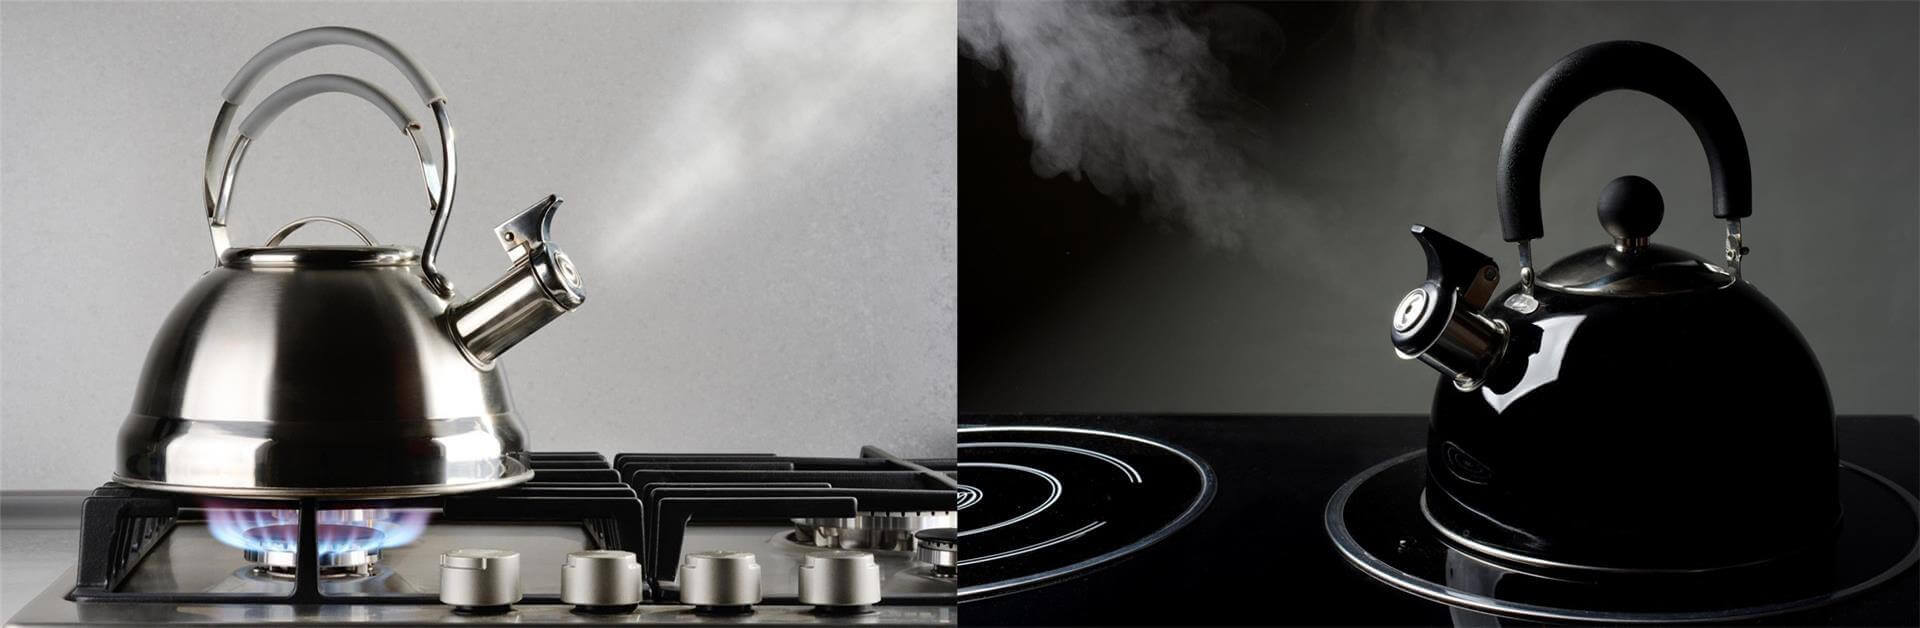 Stainless Steel Whistling Tea Kettle on Stovetop